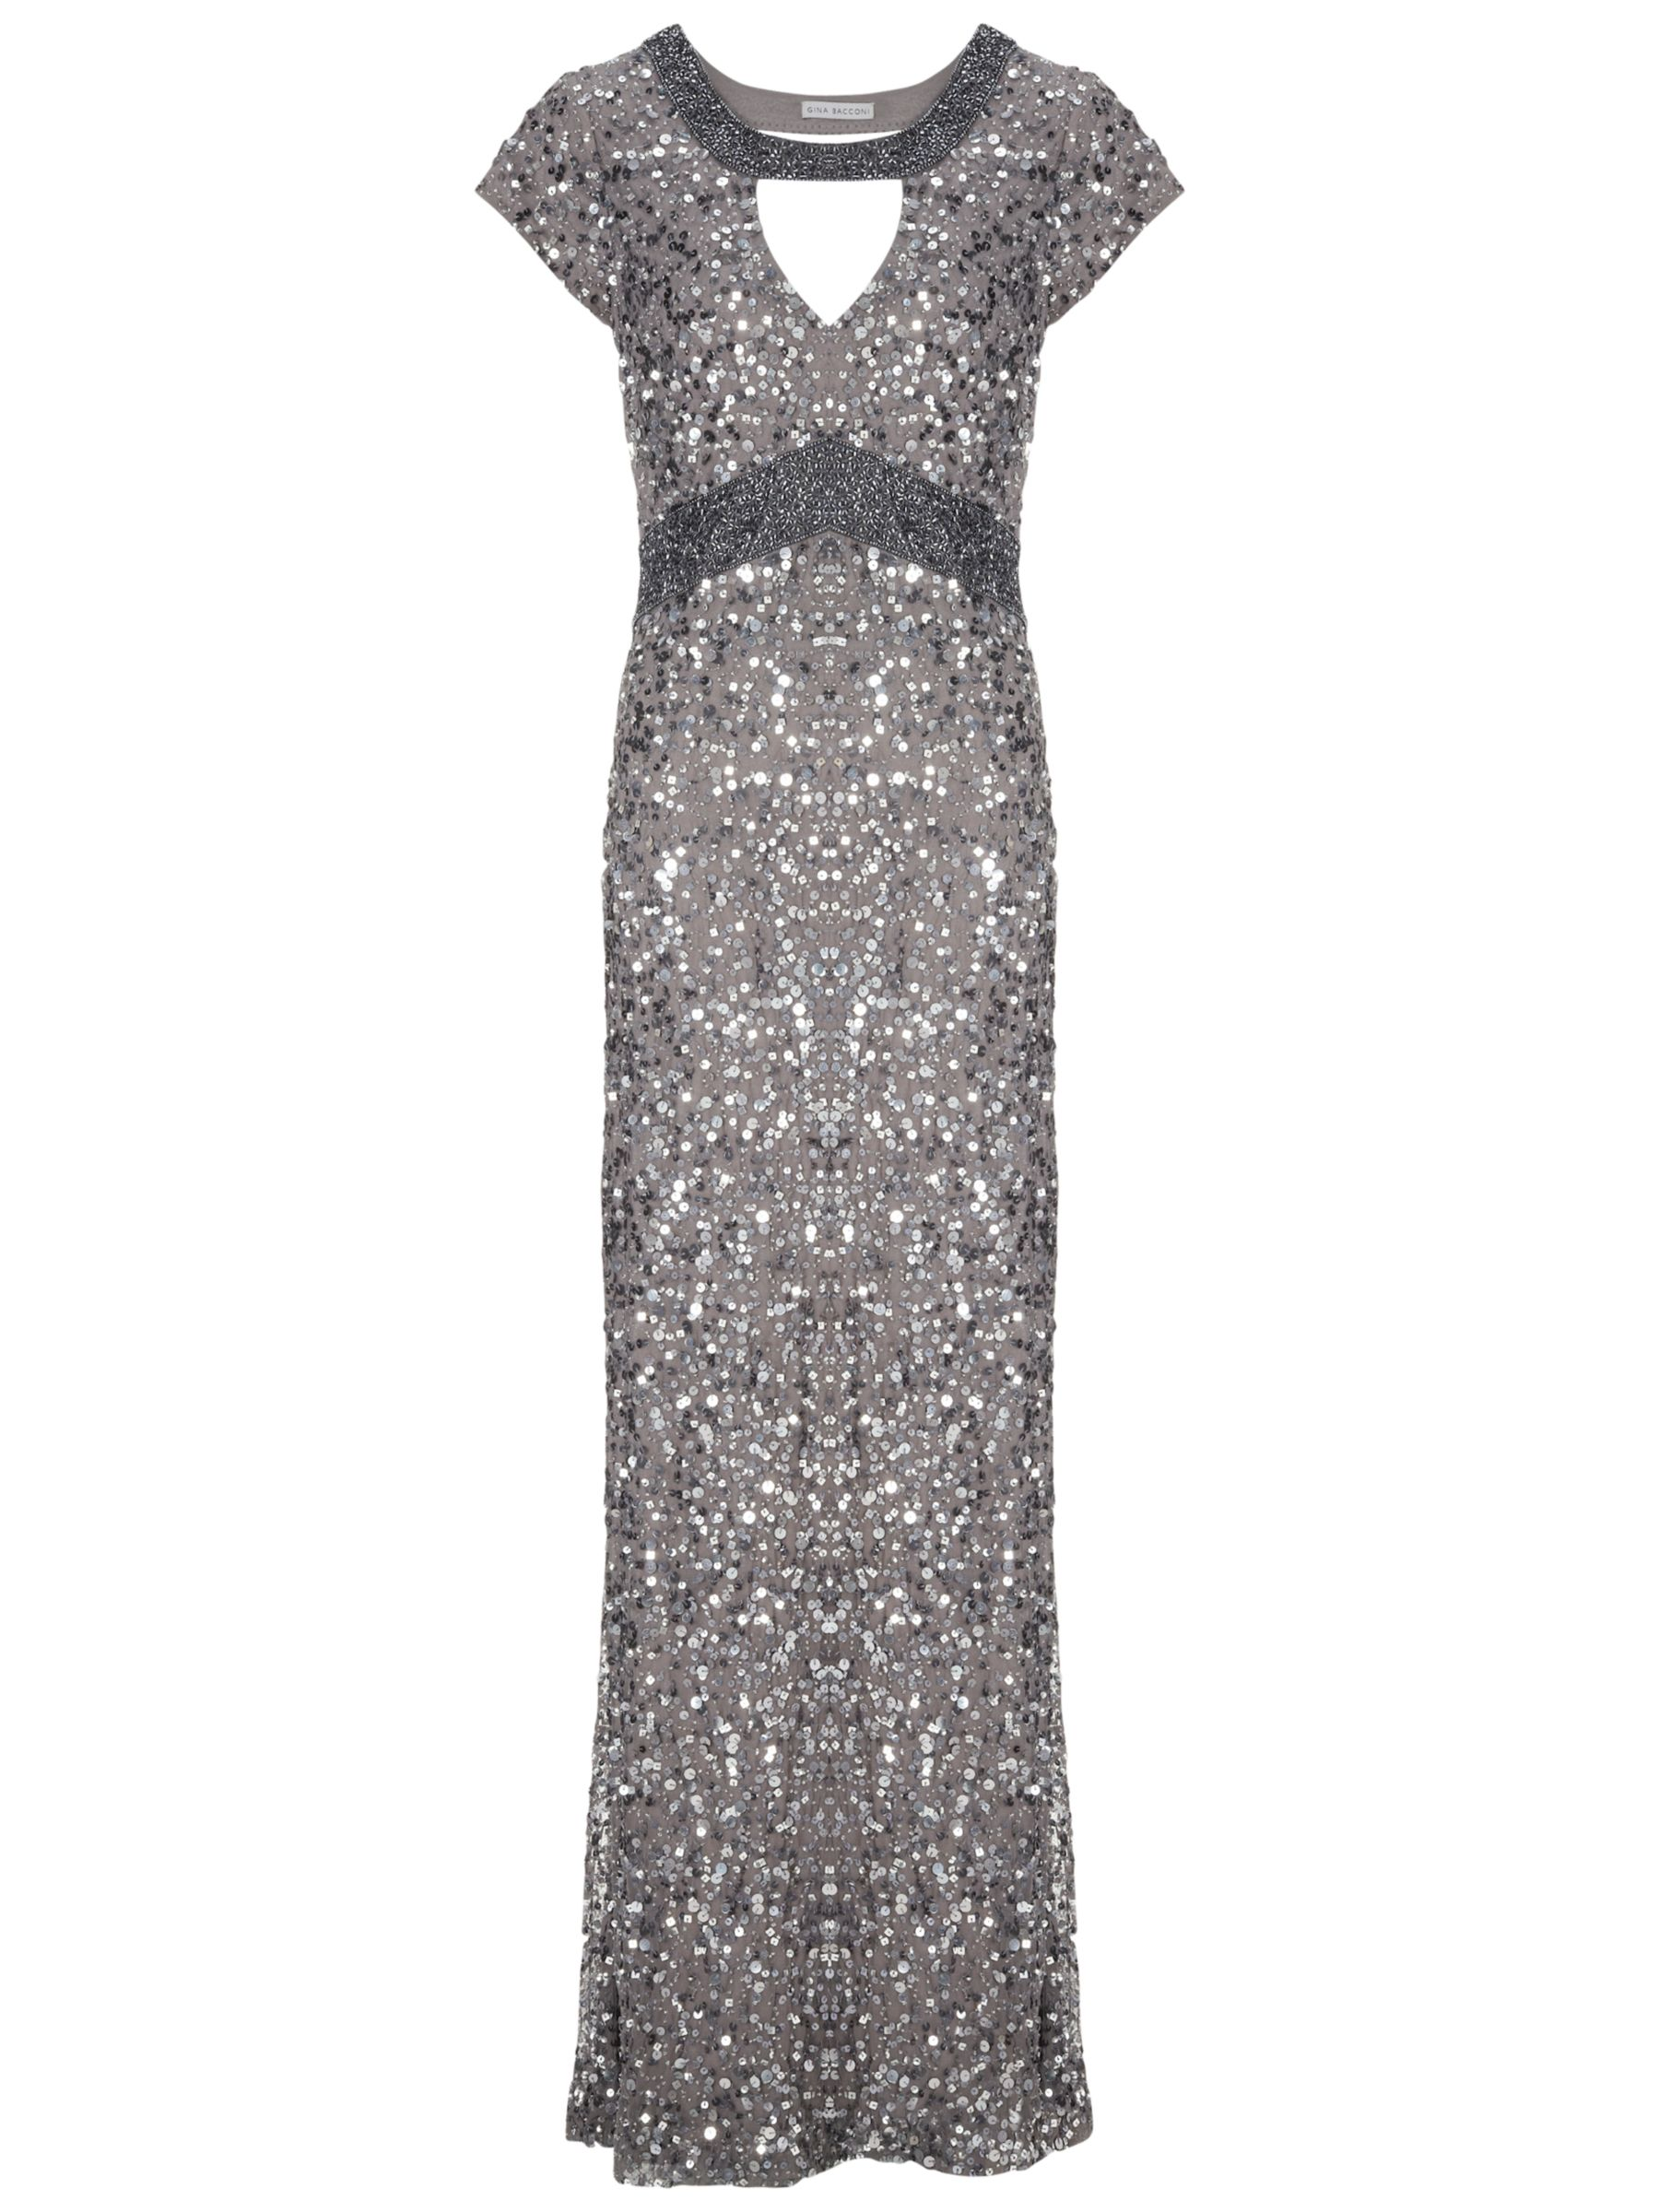 Gina Bacconi Long Sequin Keyhole Dress, Silver